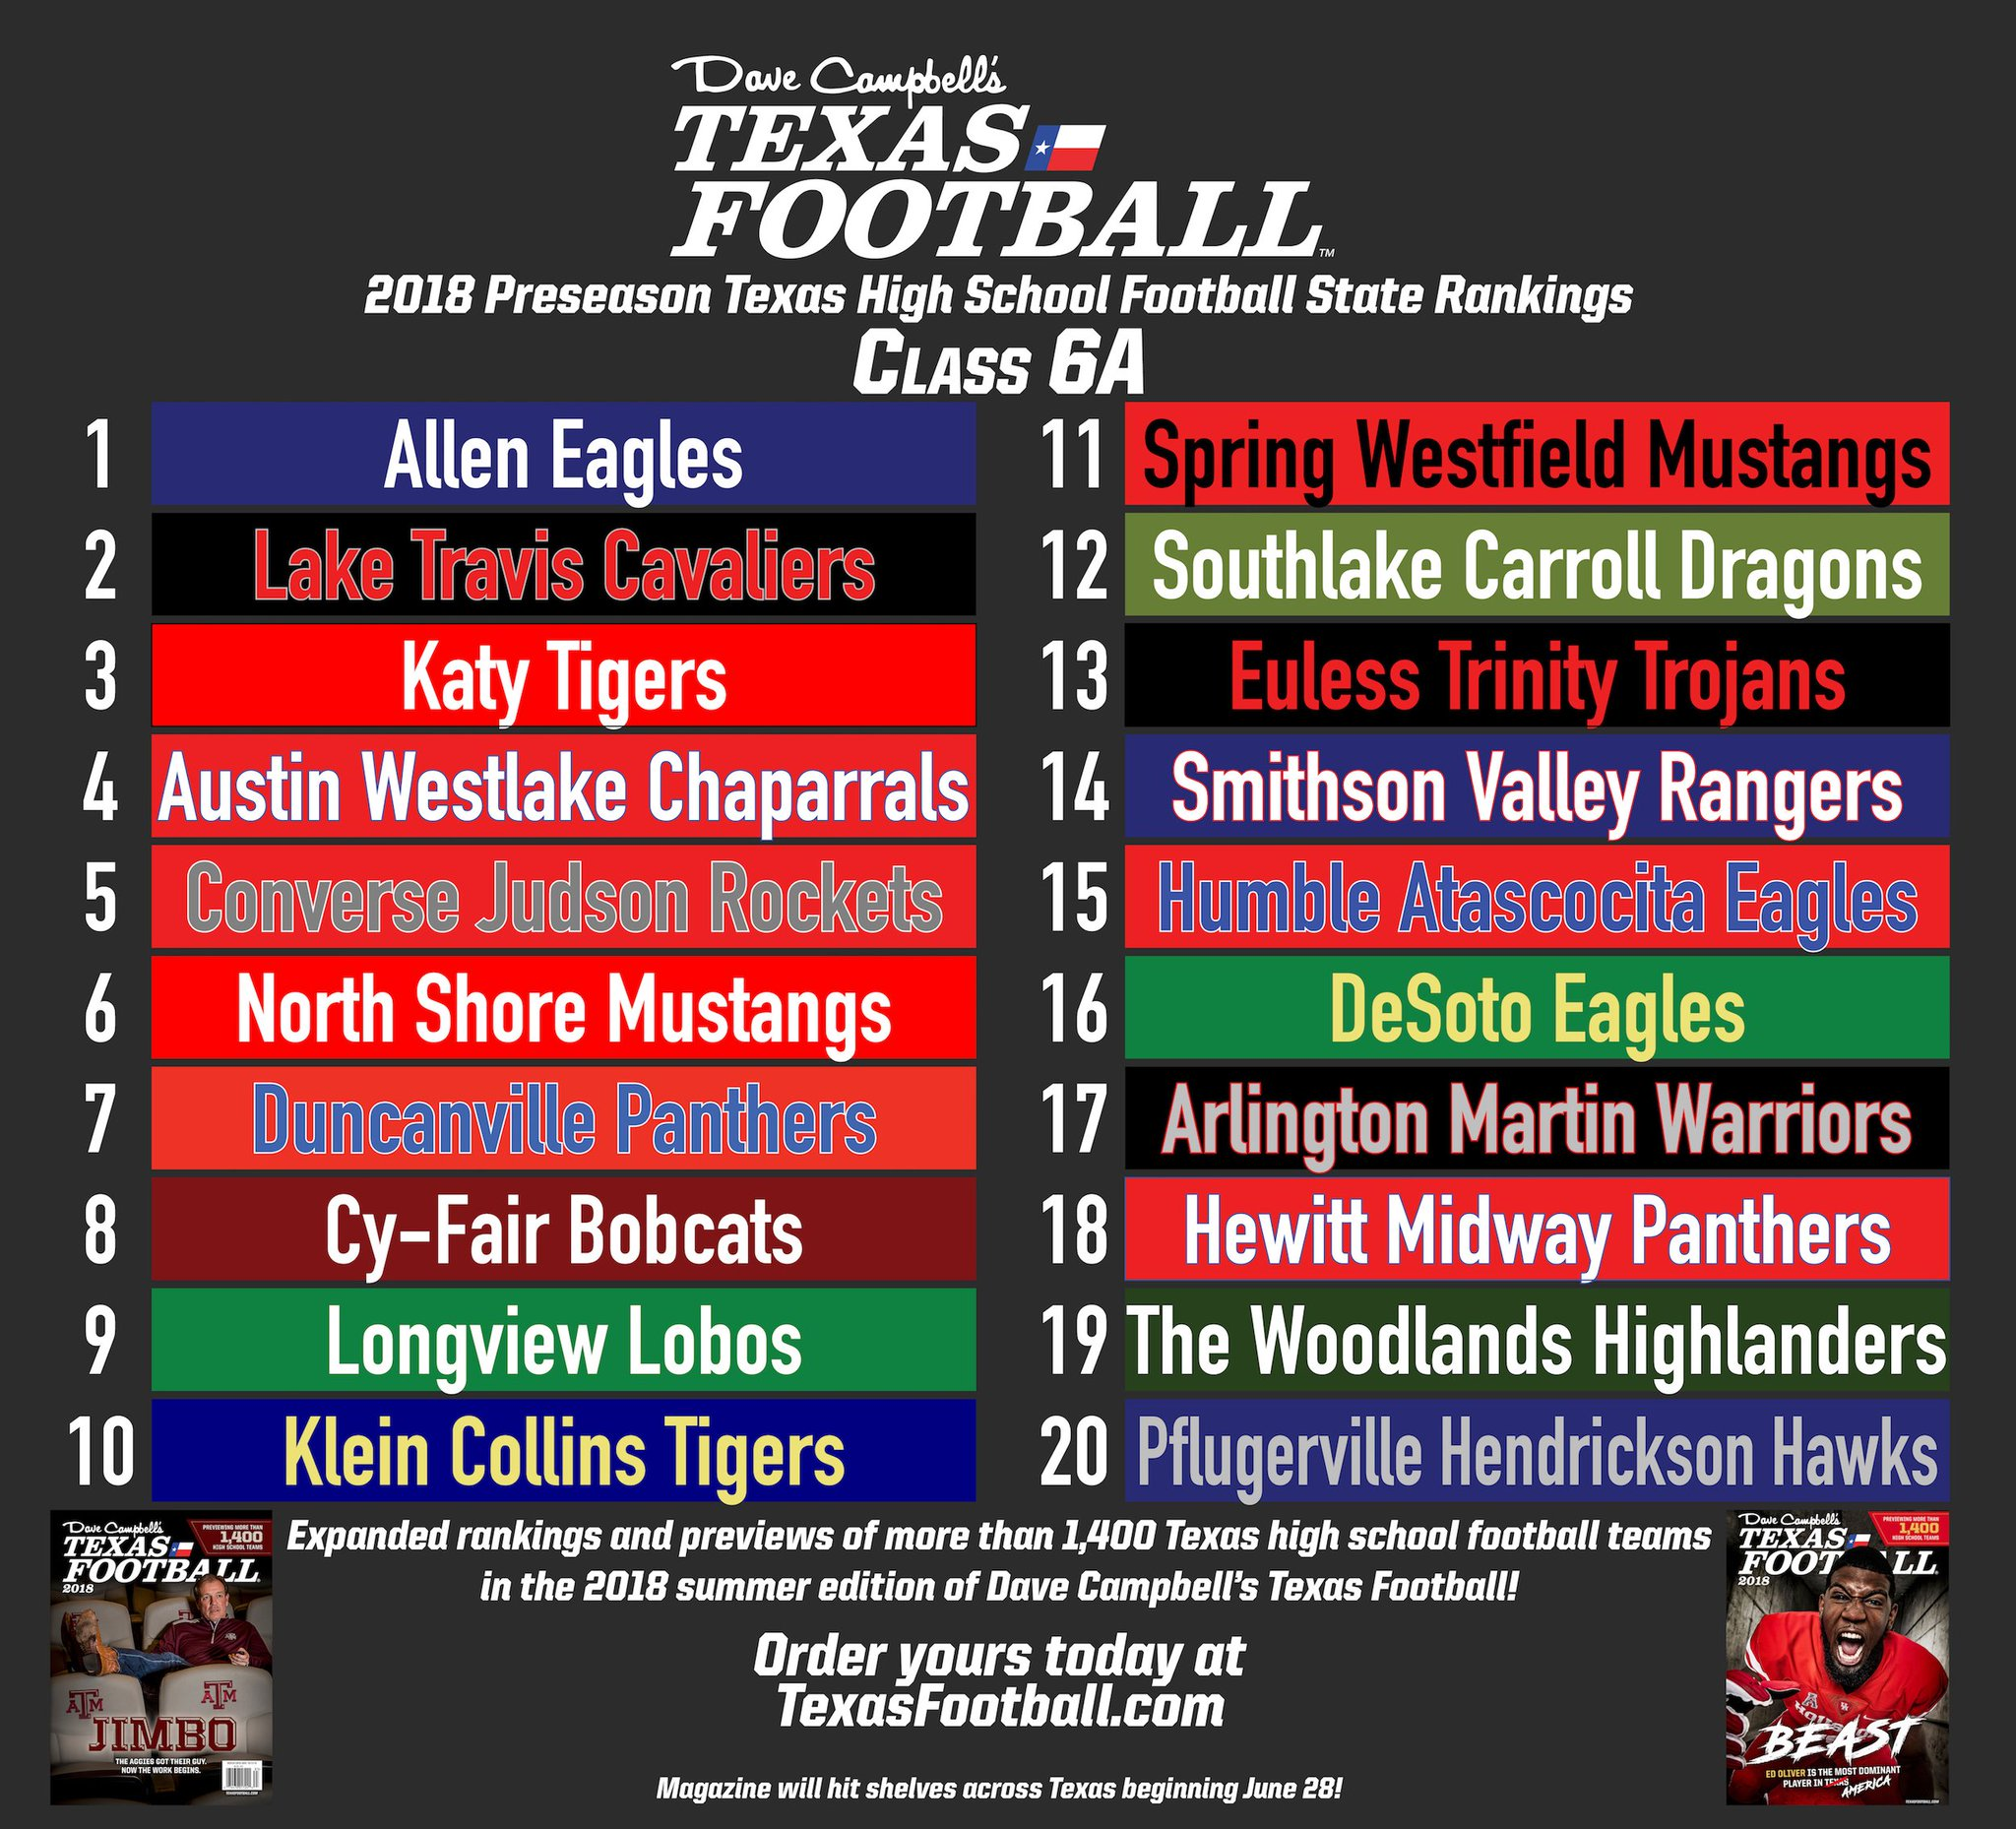 Dave Campbell S Texas Football Texasfootball Com On Twitter Revealed Dctf S Preseason Class 6a State Rankings Expanded Rankings Of Every Class And Previews Of More Than 1 400 Texas High School Football